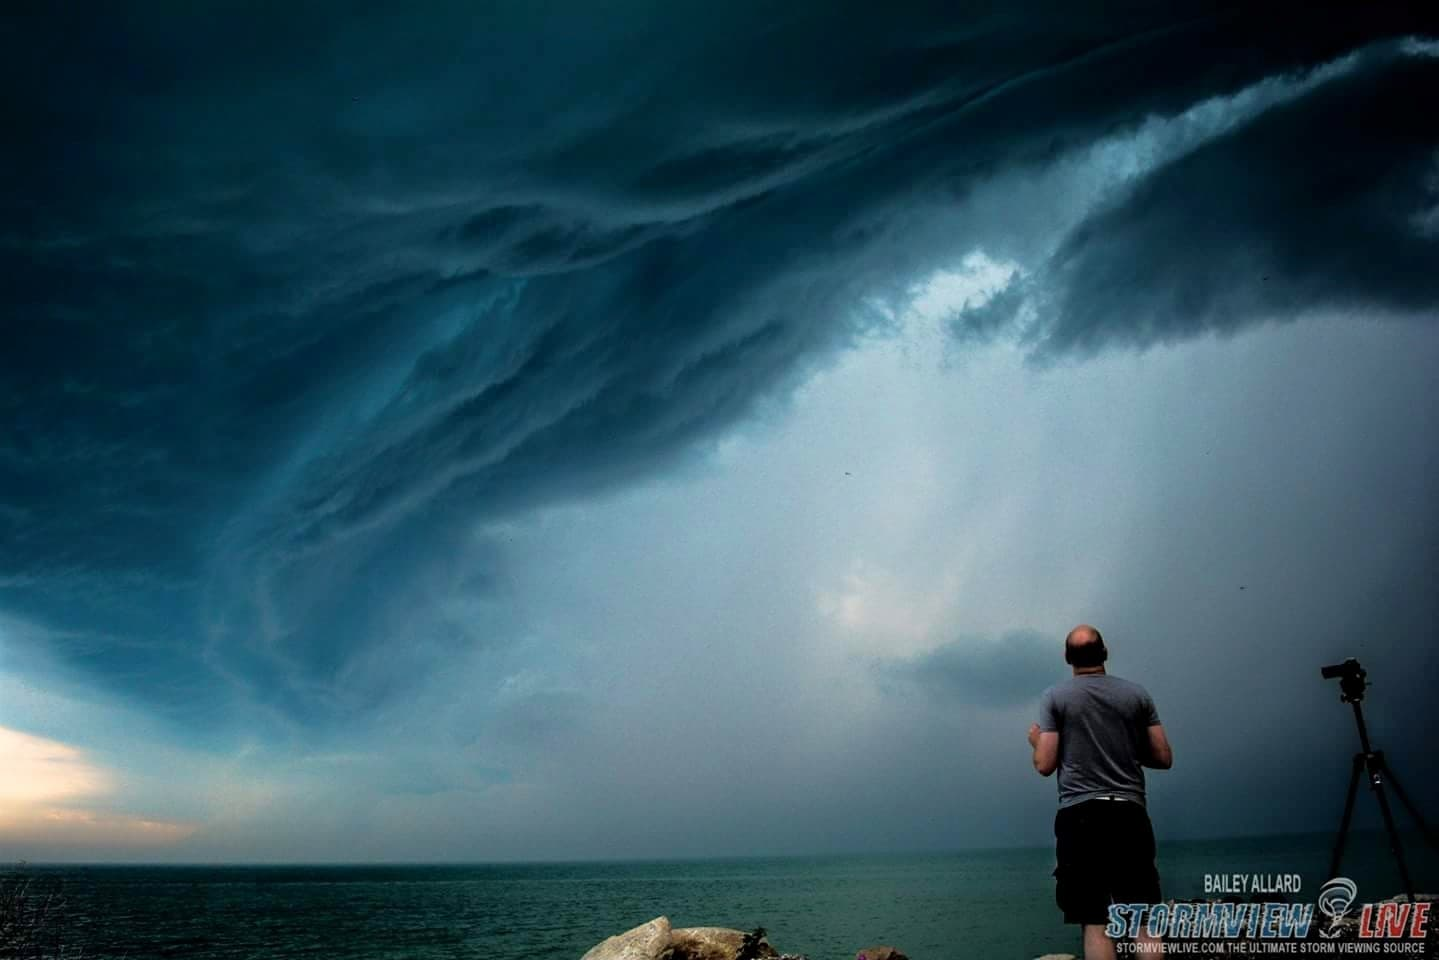 Dave Patrick in awe as the storms move into Ontario over Lake Huron. June 18th, 2015. Taken at Point Clarke.